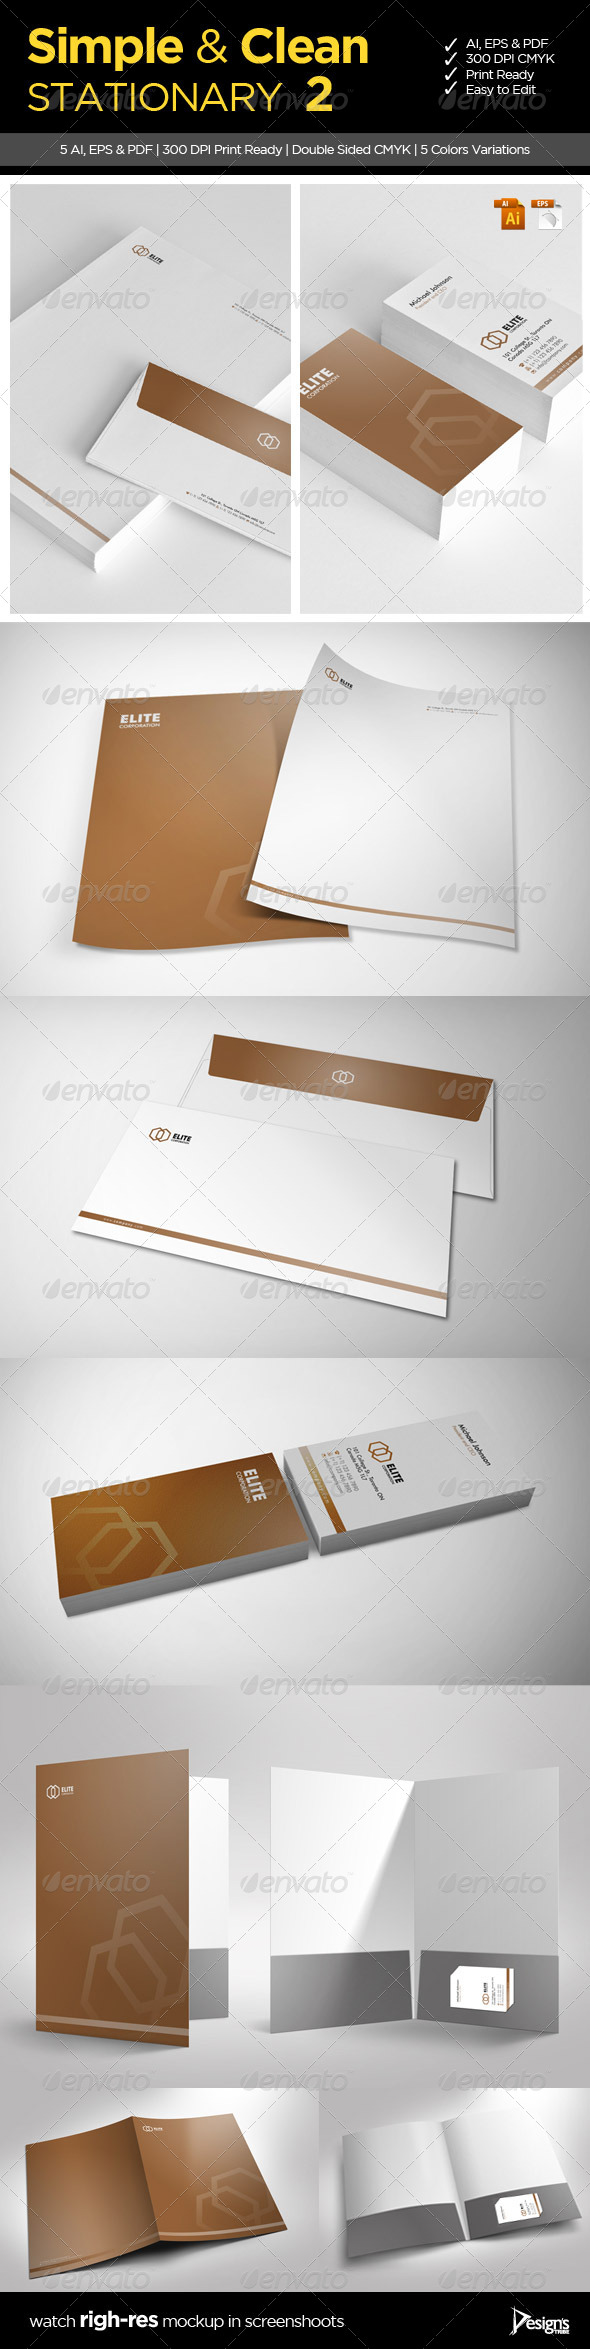 Simple and Clean Stationary 2 - Stationery Print Templates